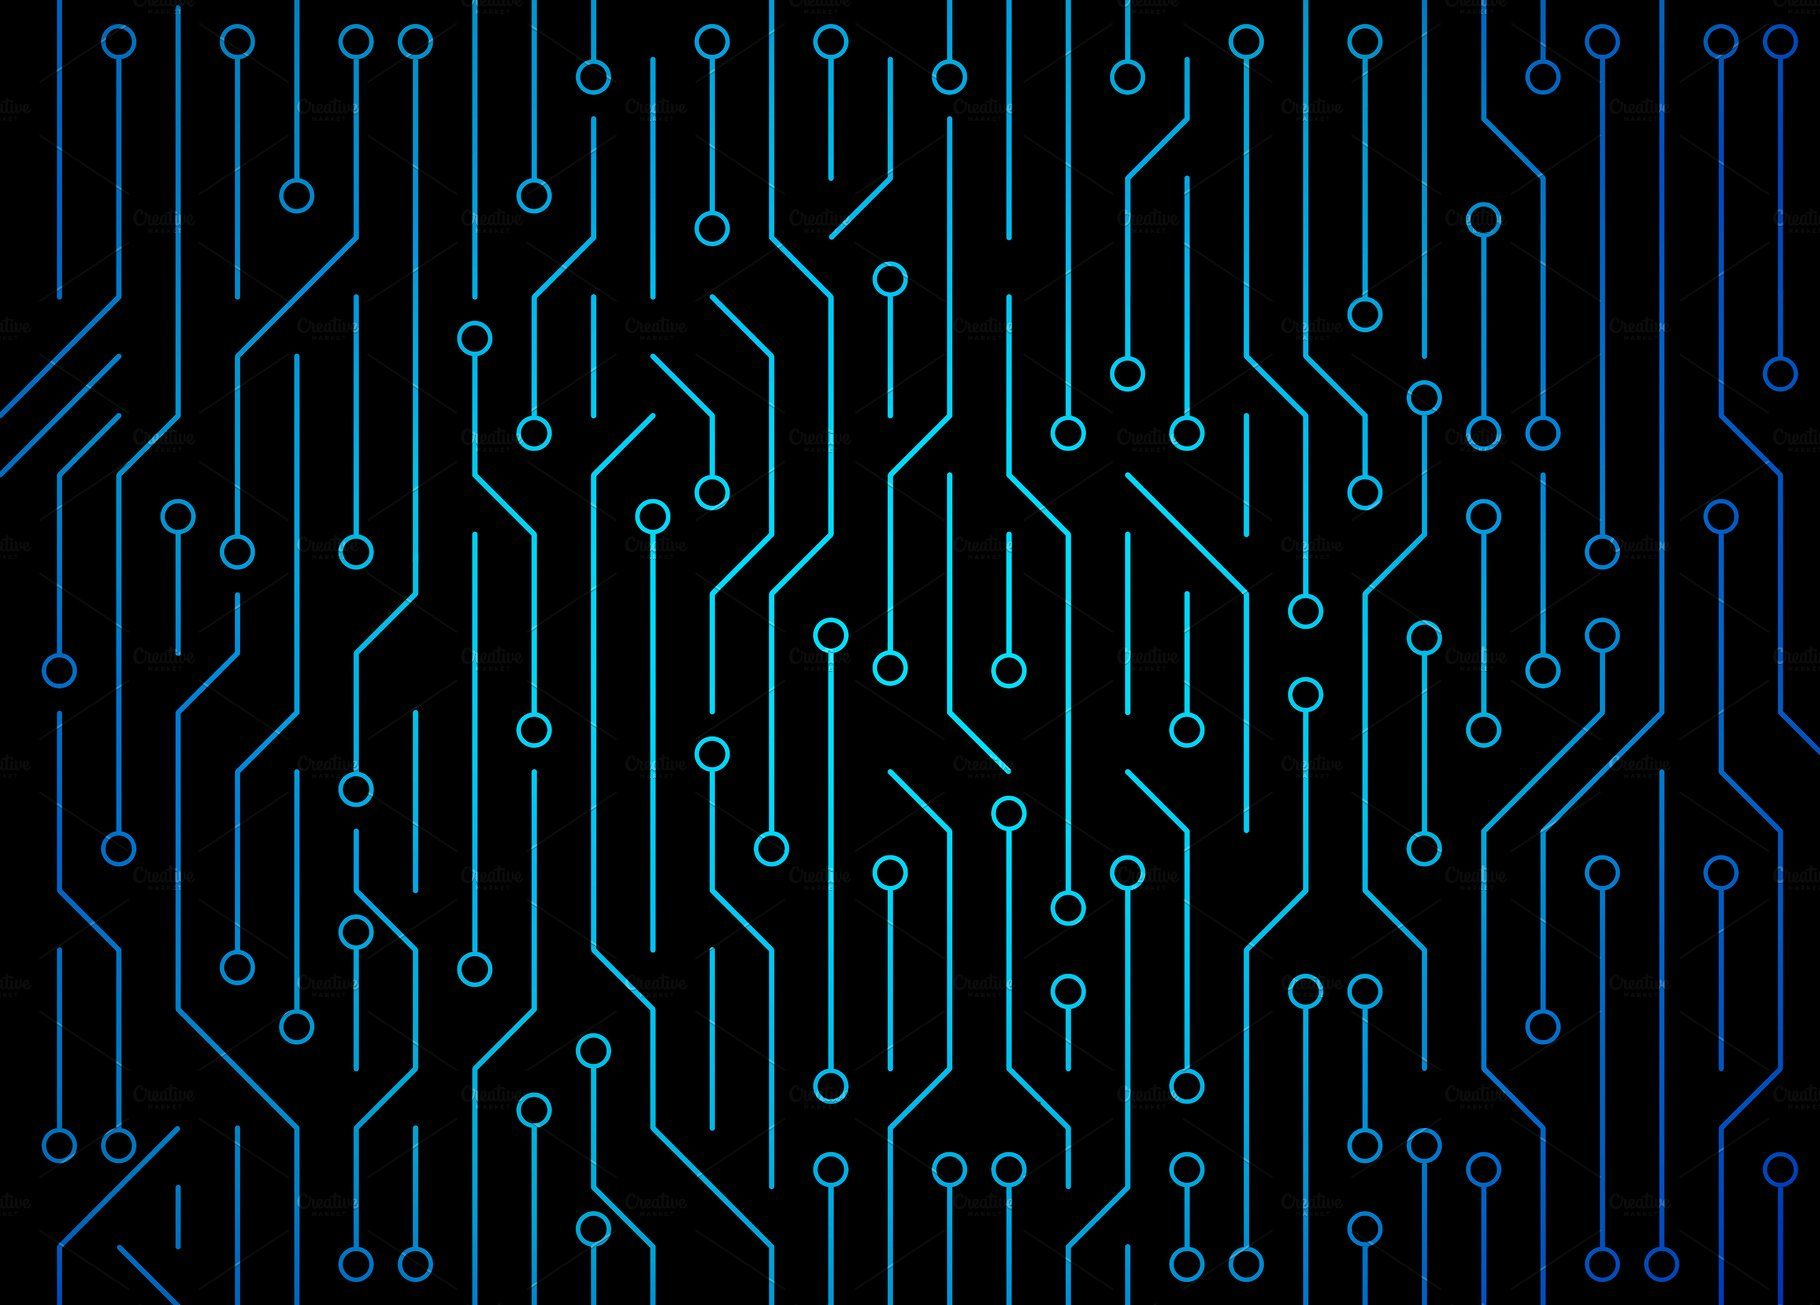 Circuit Board High Tech Technology Background Texture Pattern Abstract Illustration Technology Background Textured Background Futuristic Technology